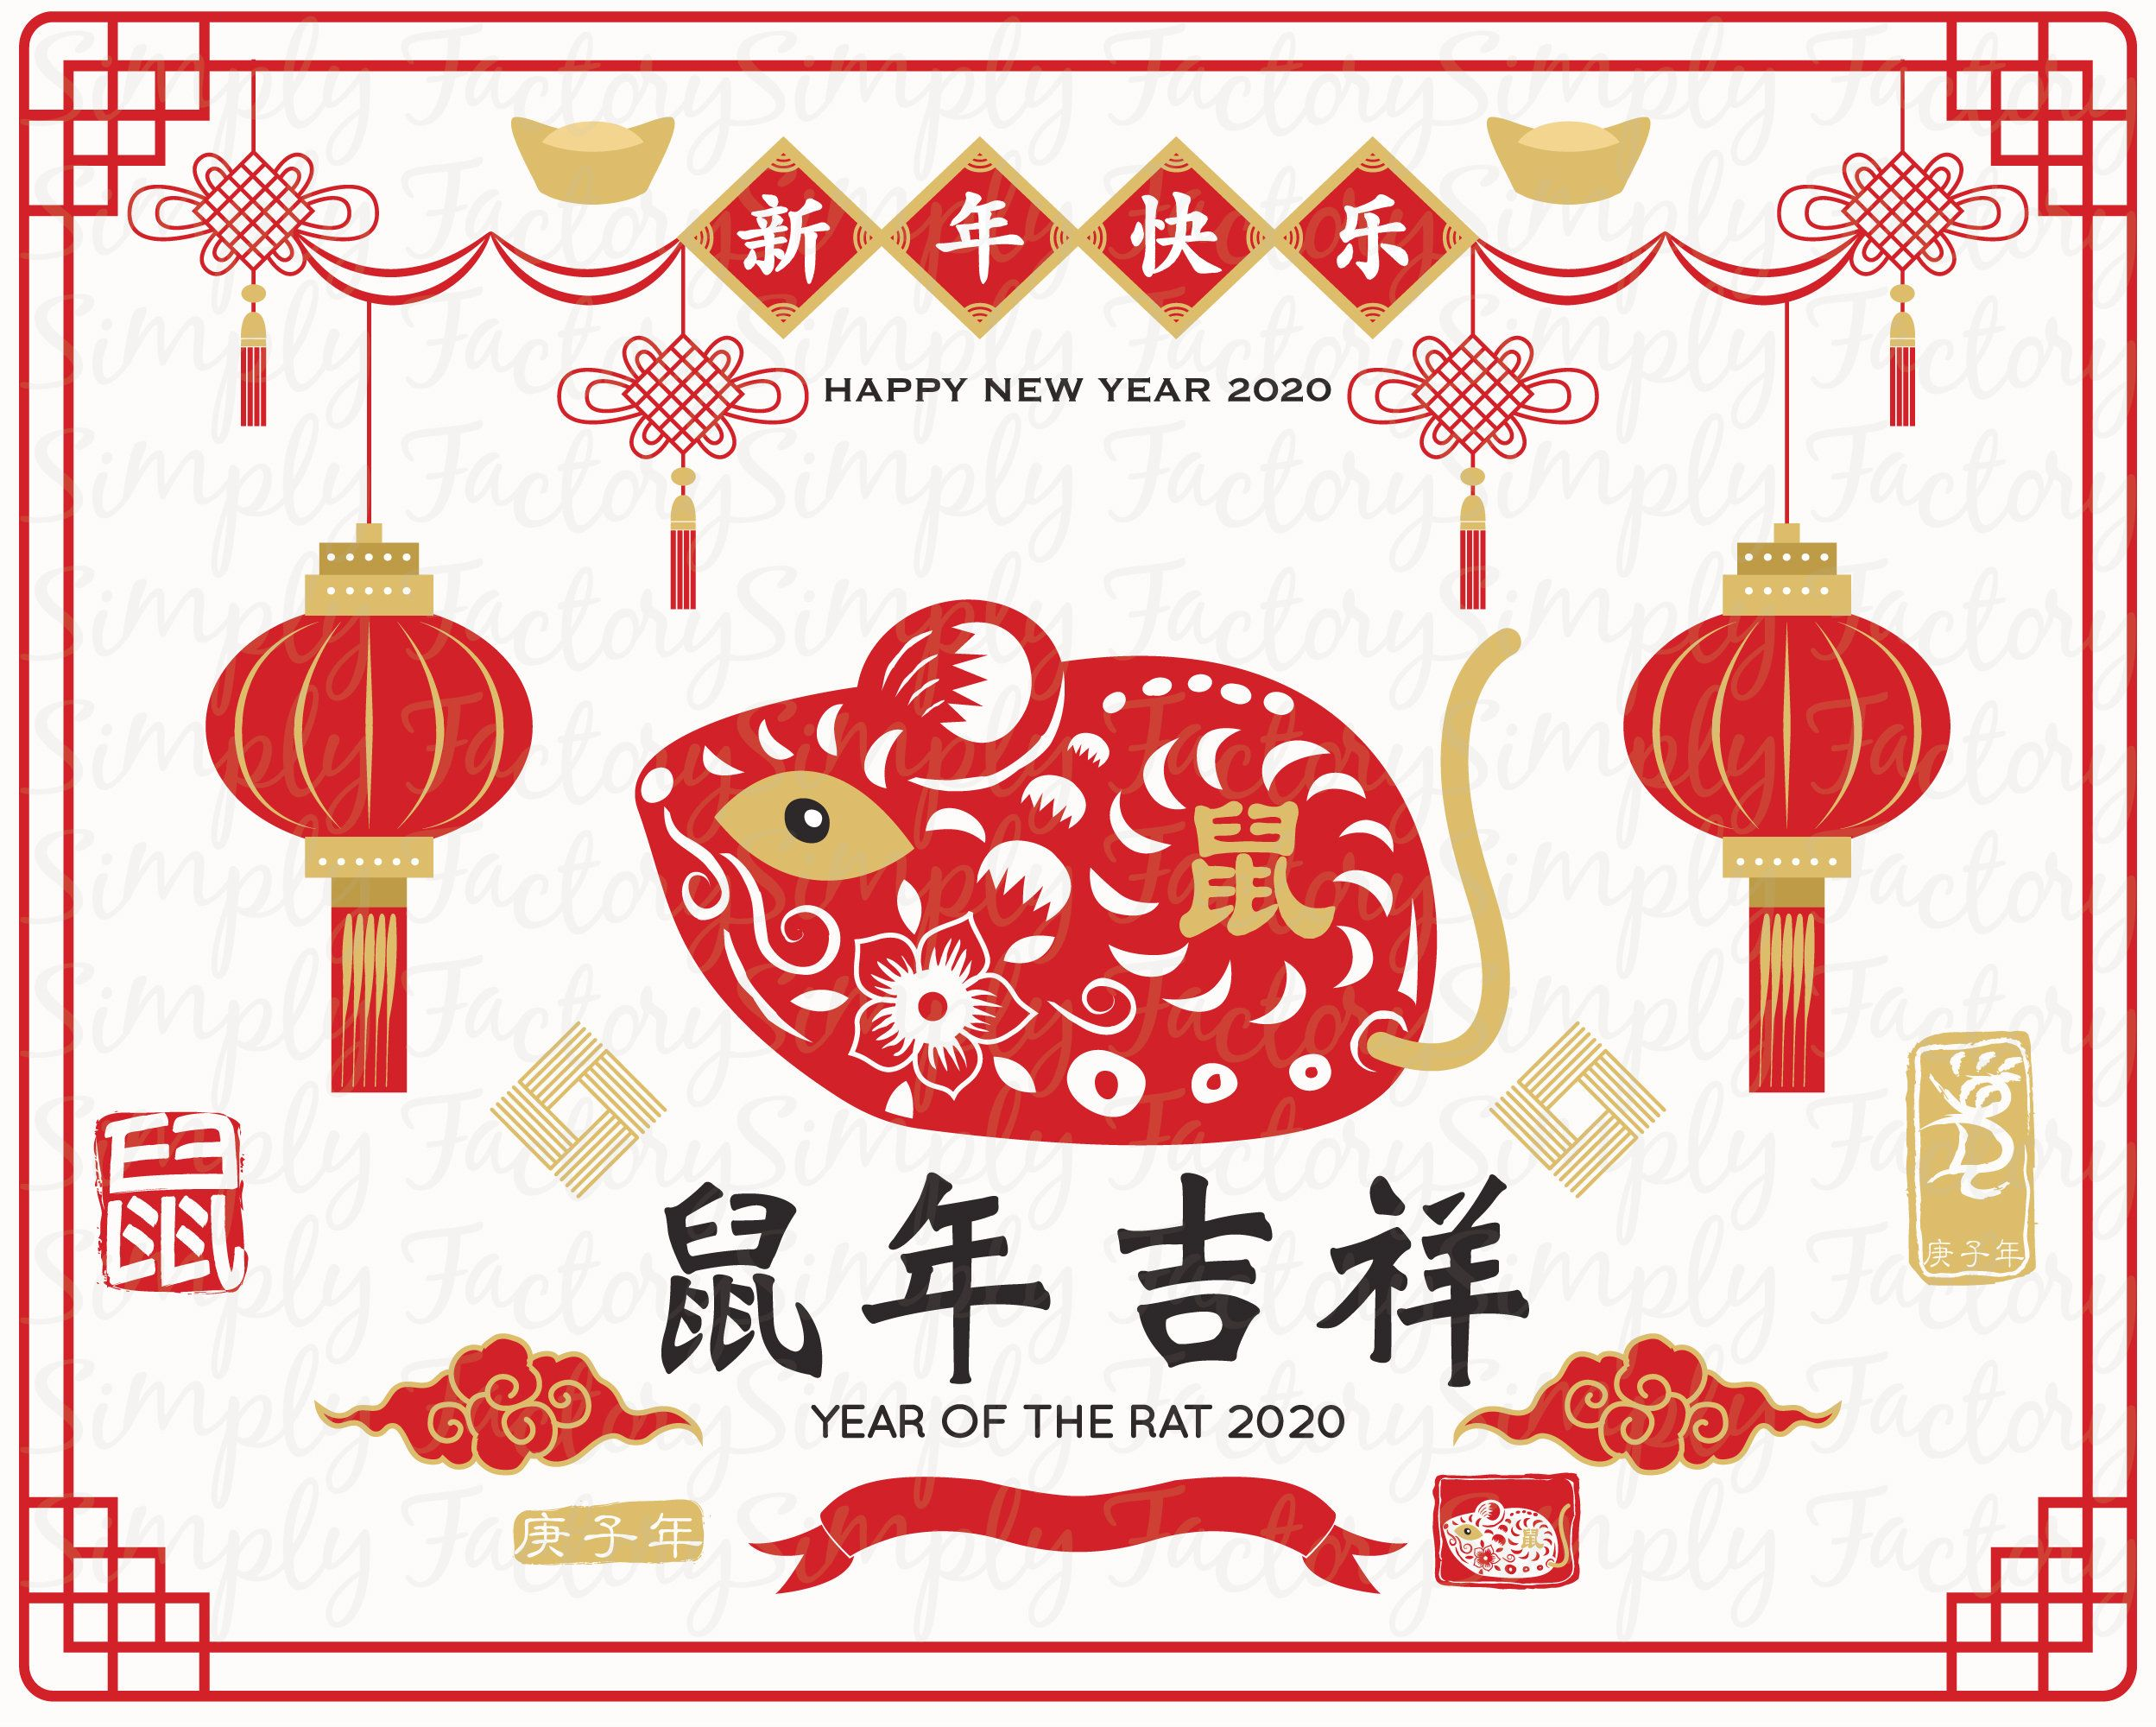 Year Of The Rat Chinese New Year 2020 Rat Year Lunar New Year